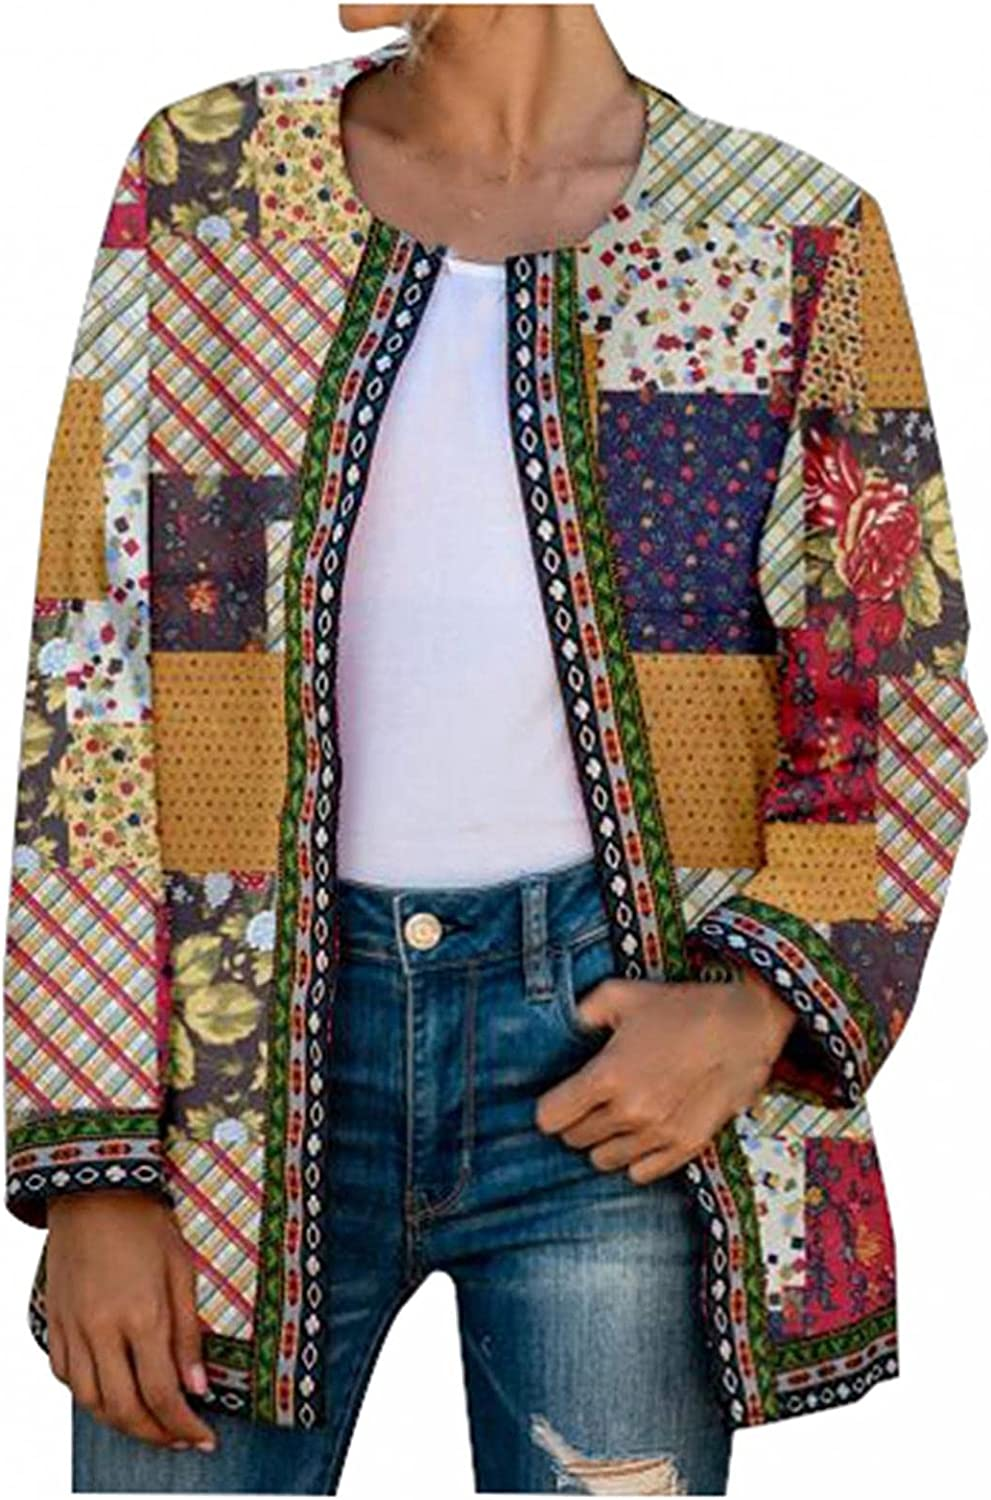 PHSHY Womens Business Work Office Printed Floral Blazers Cotton Don't miss the Product campaign